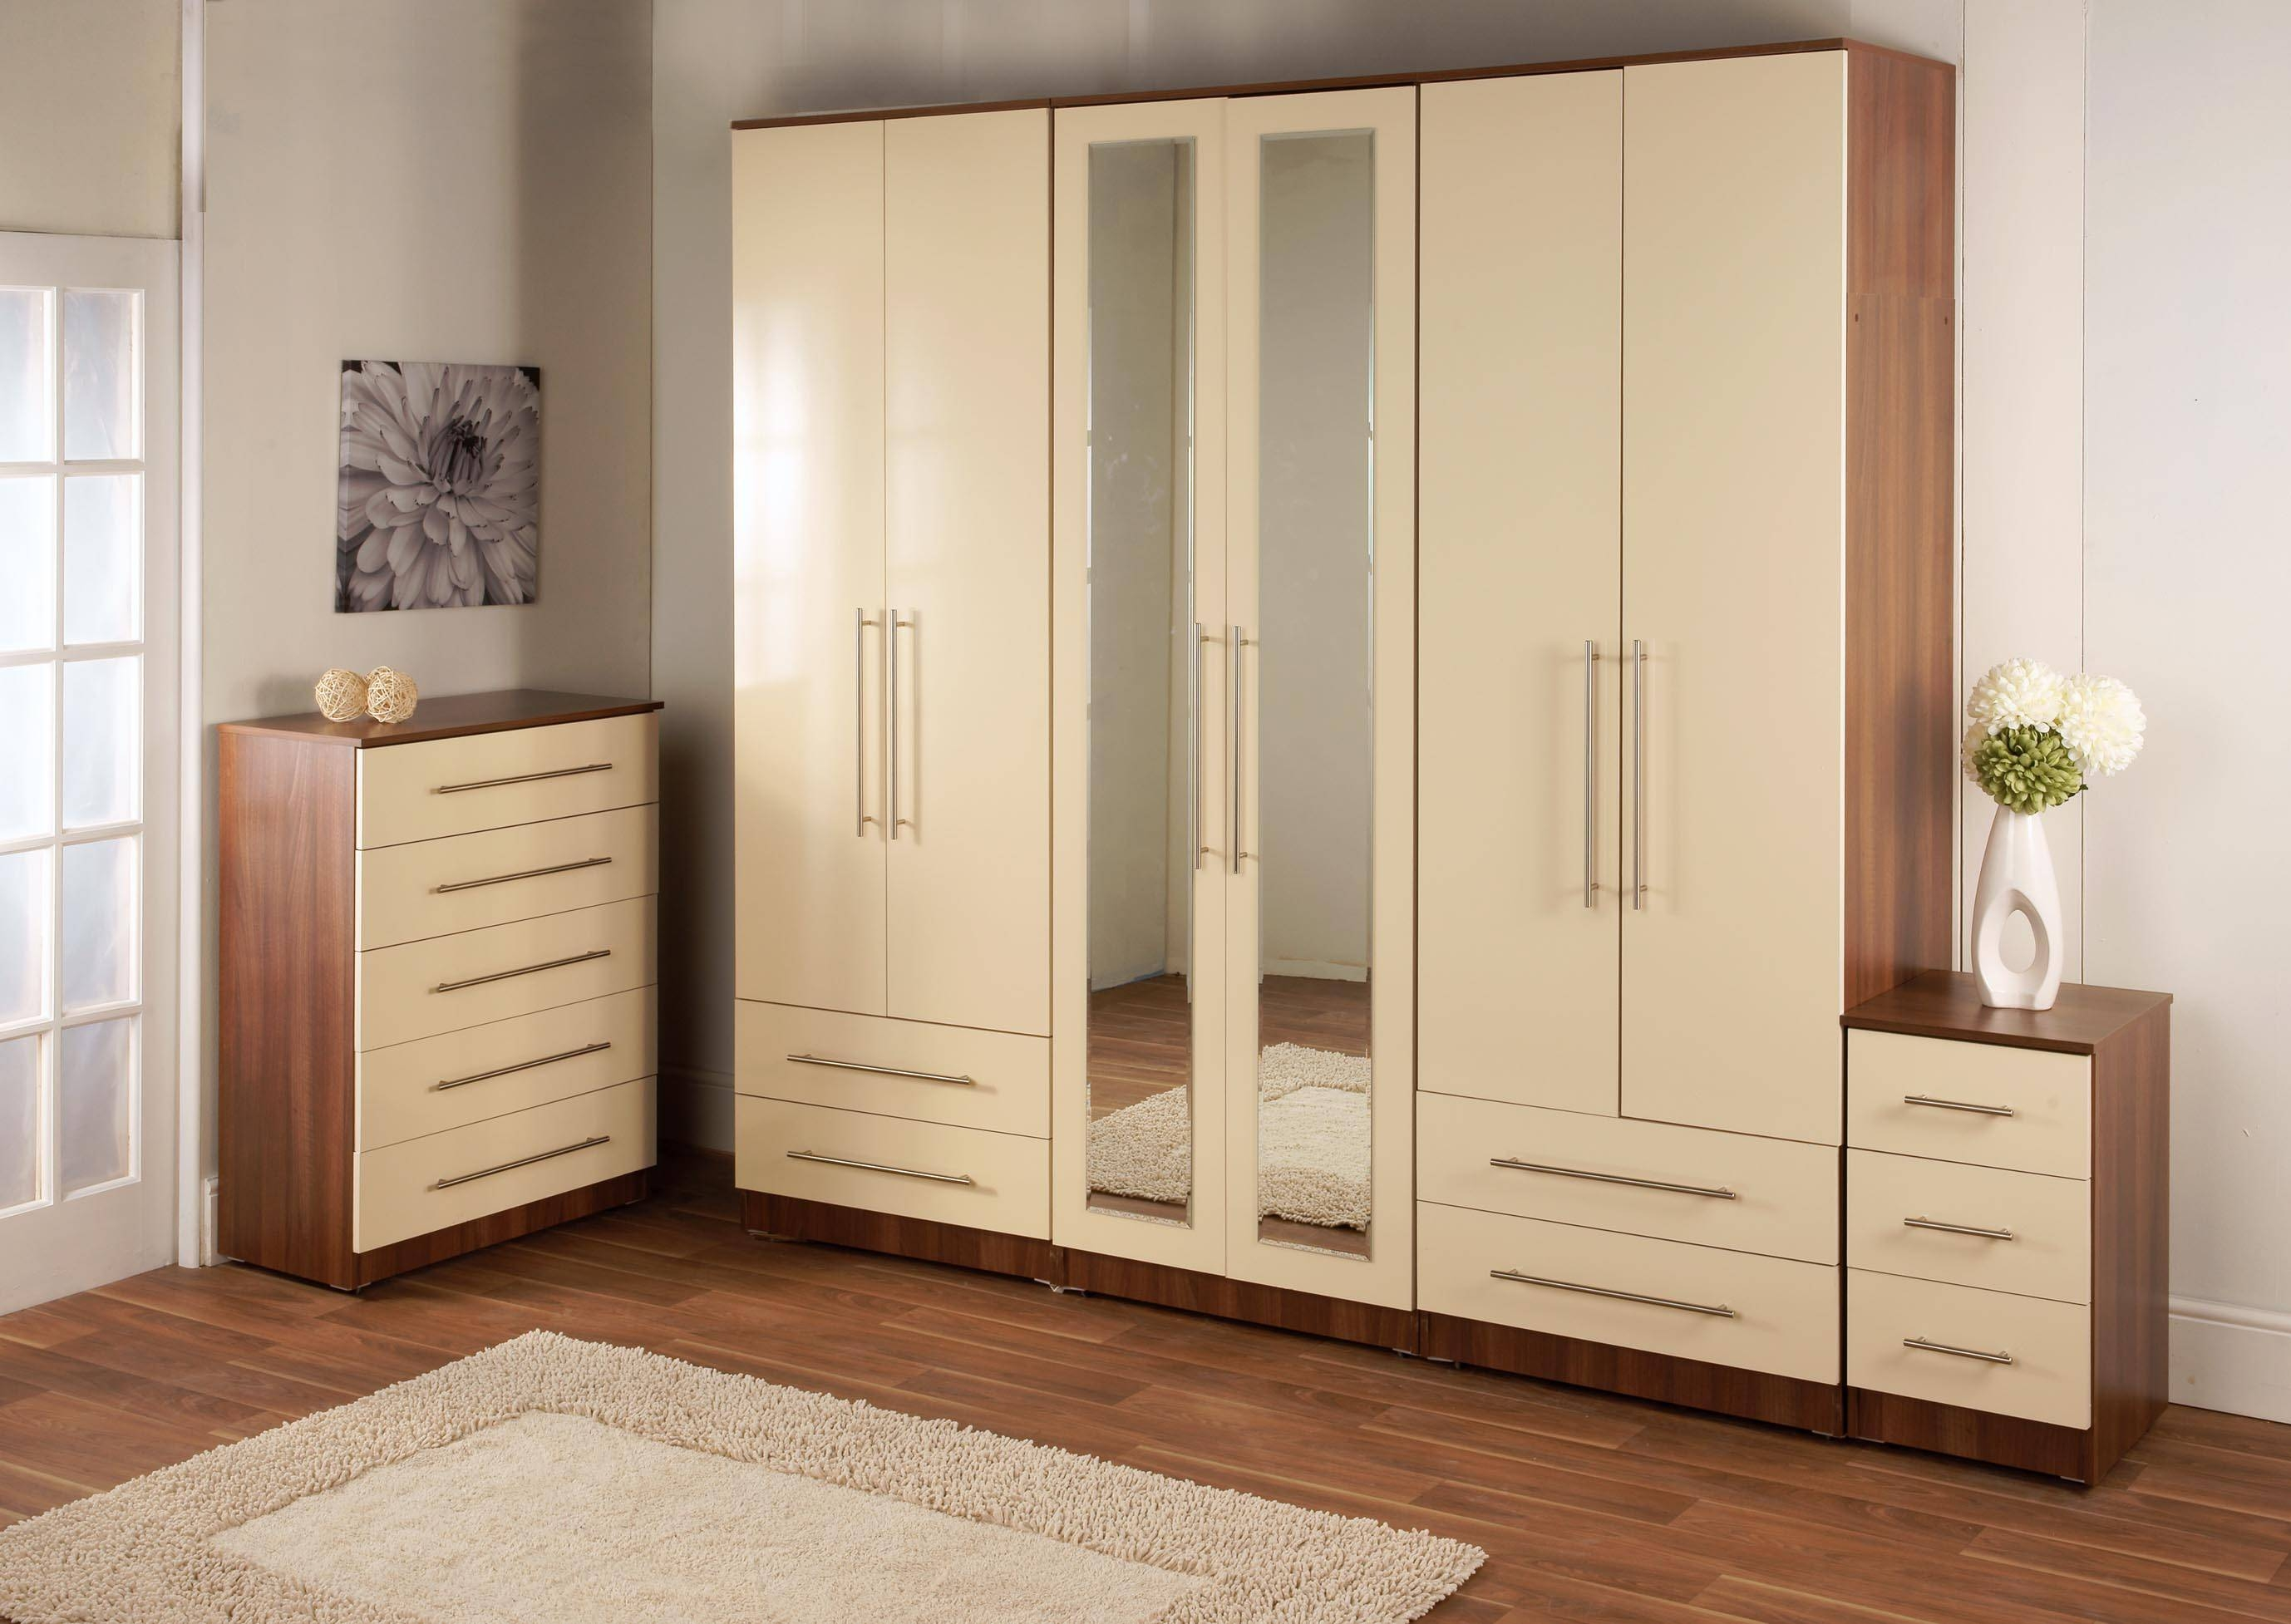 Bedroom Wardrobes regarding Cheap Wardrobes Sets (Image 3 of 15)